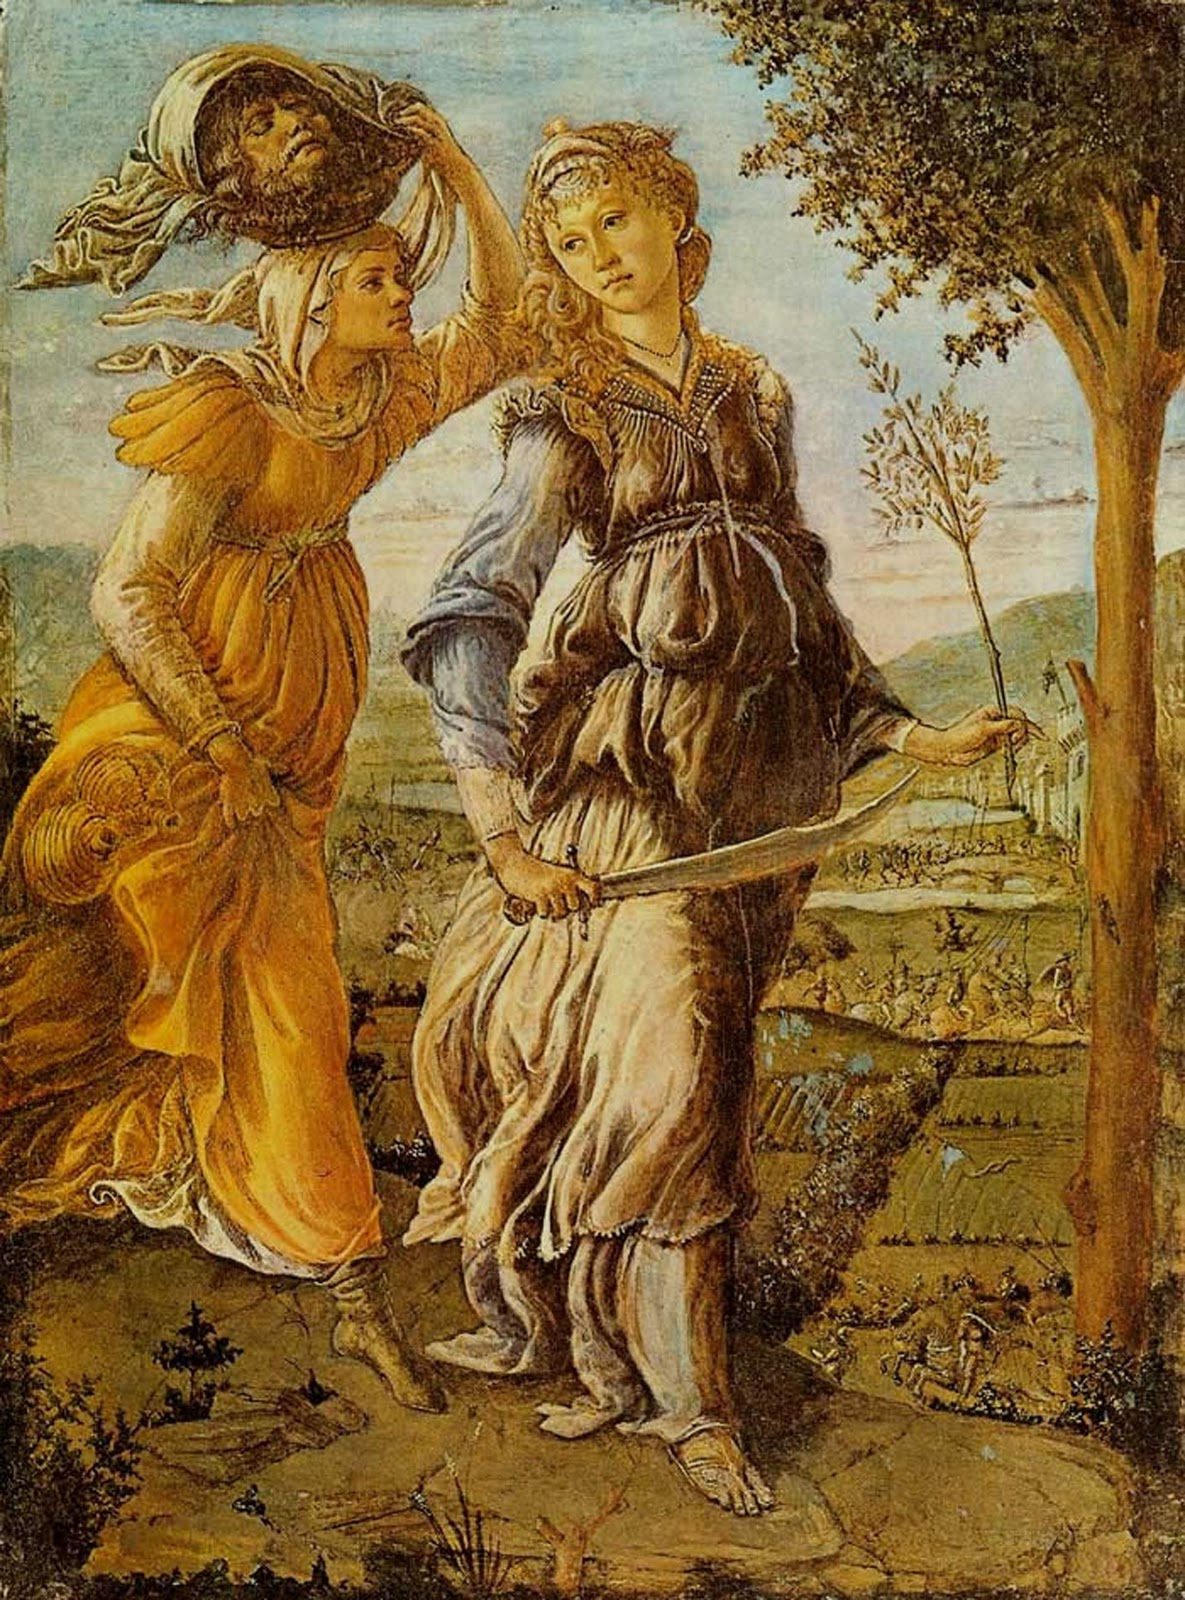 Return of Judith to Bethulia